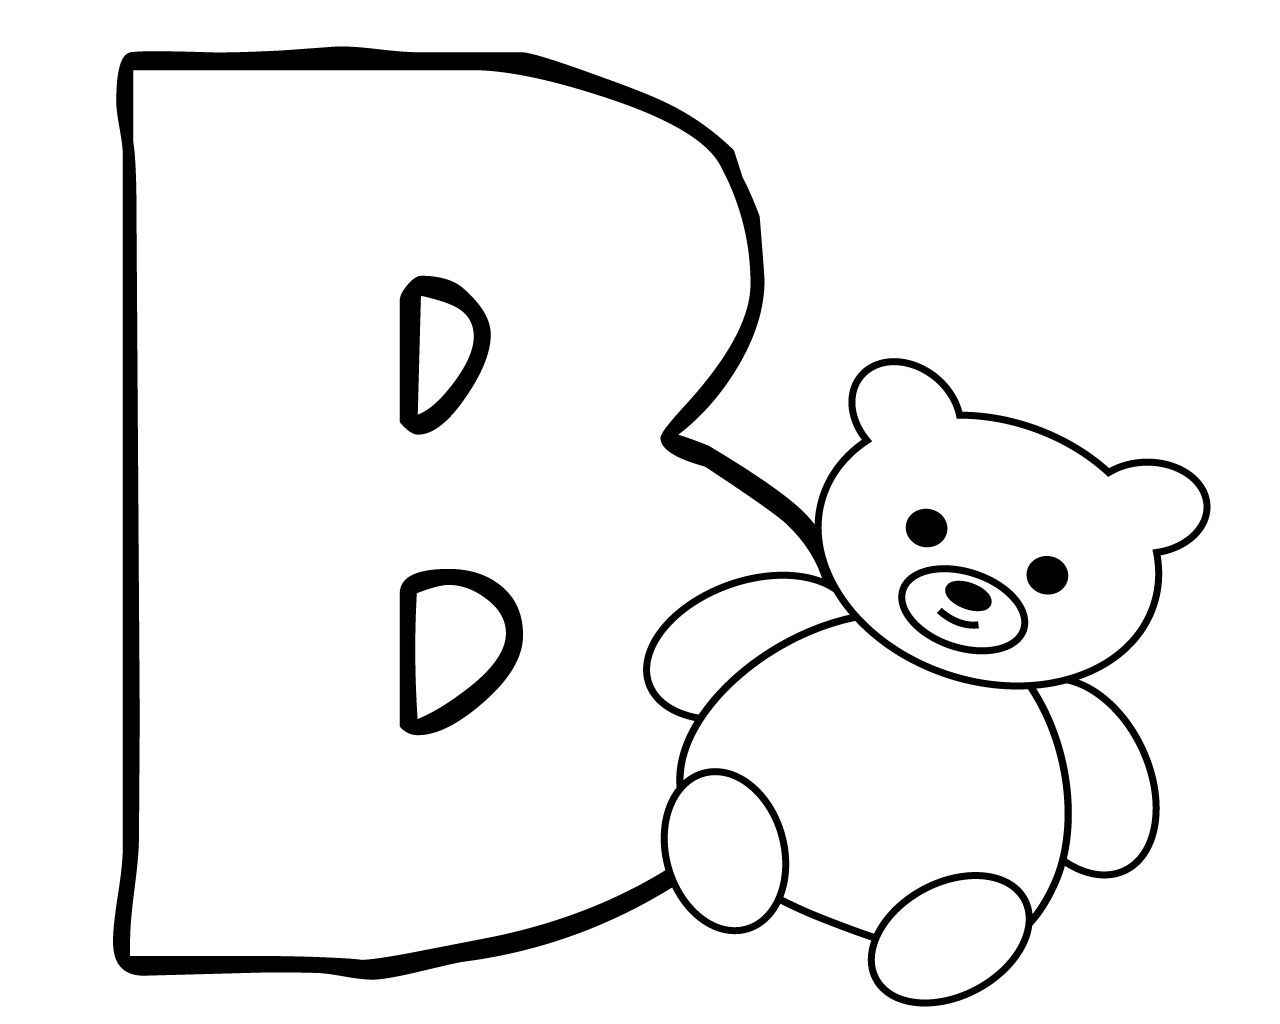 Letter B Coloring Pages For Preschoolers Letter B Coloring Pages Butterfly Coloring Page Puppy Coloring Pages